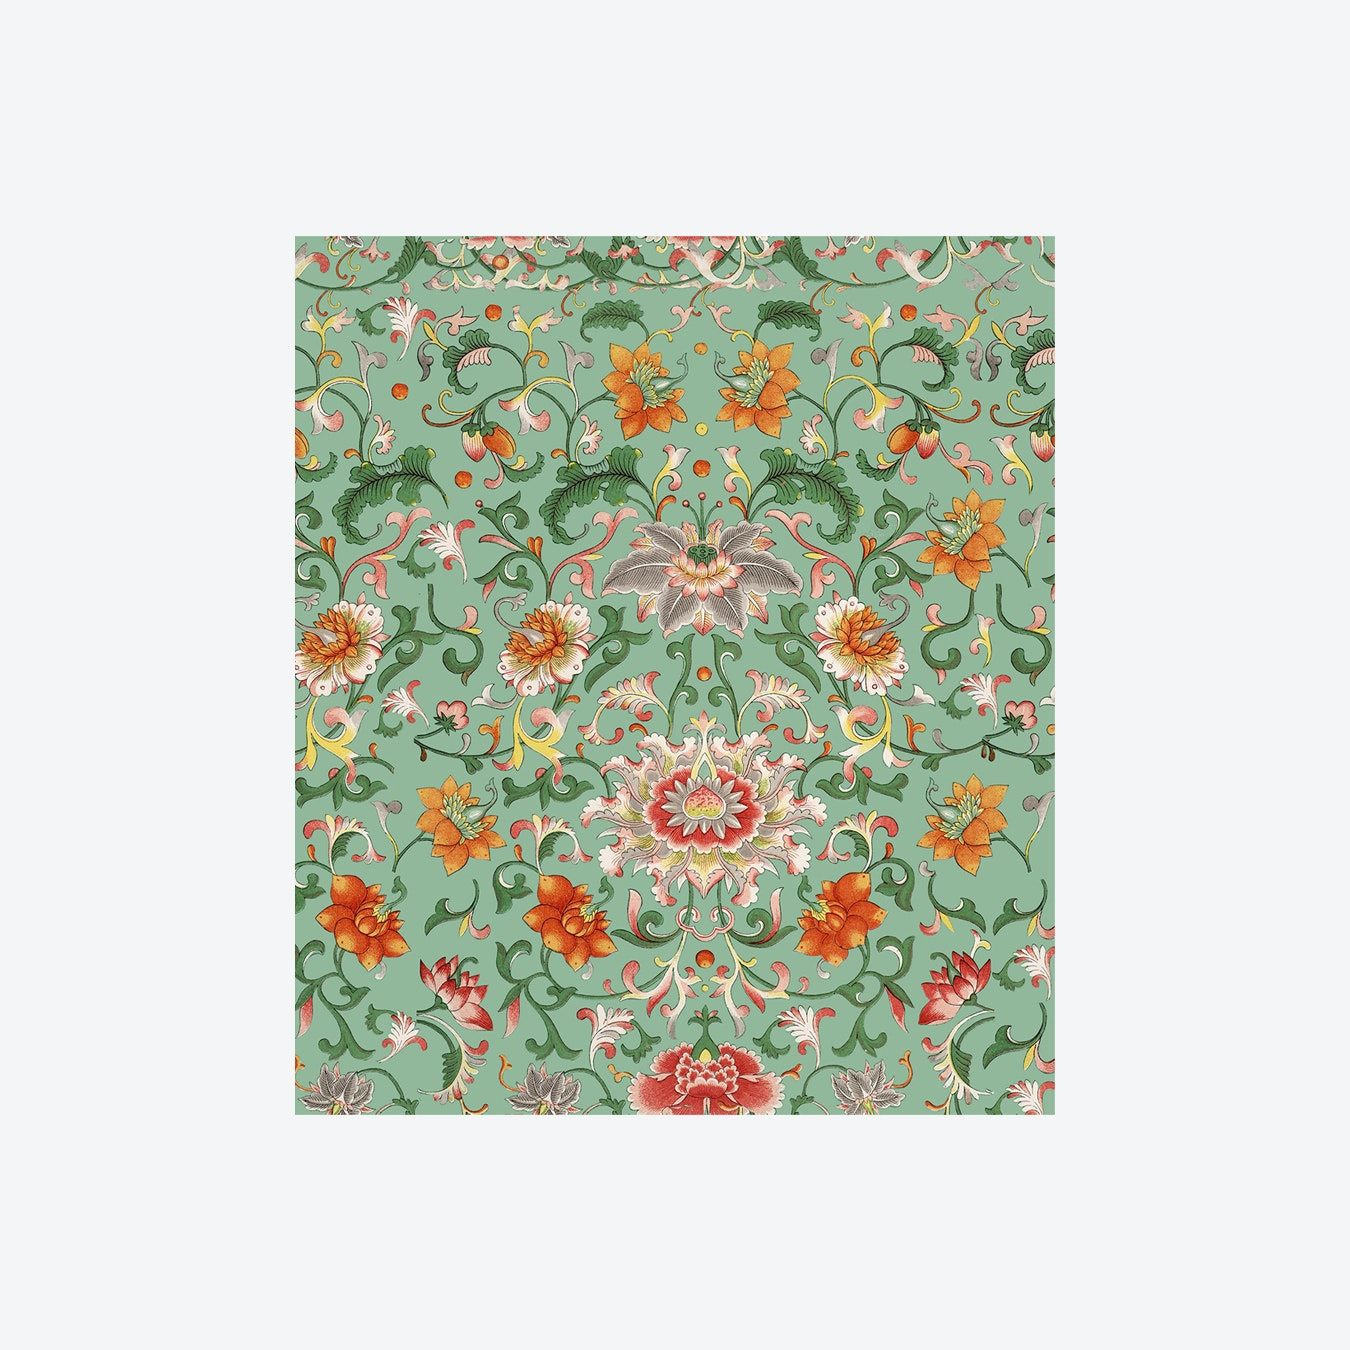 Chinese Floral Wallpaper By Mind The Gap Fy